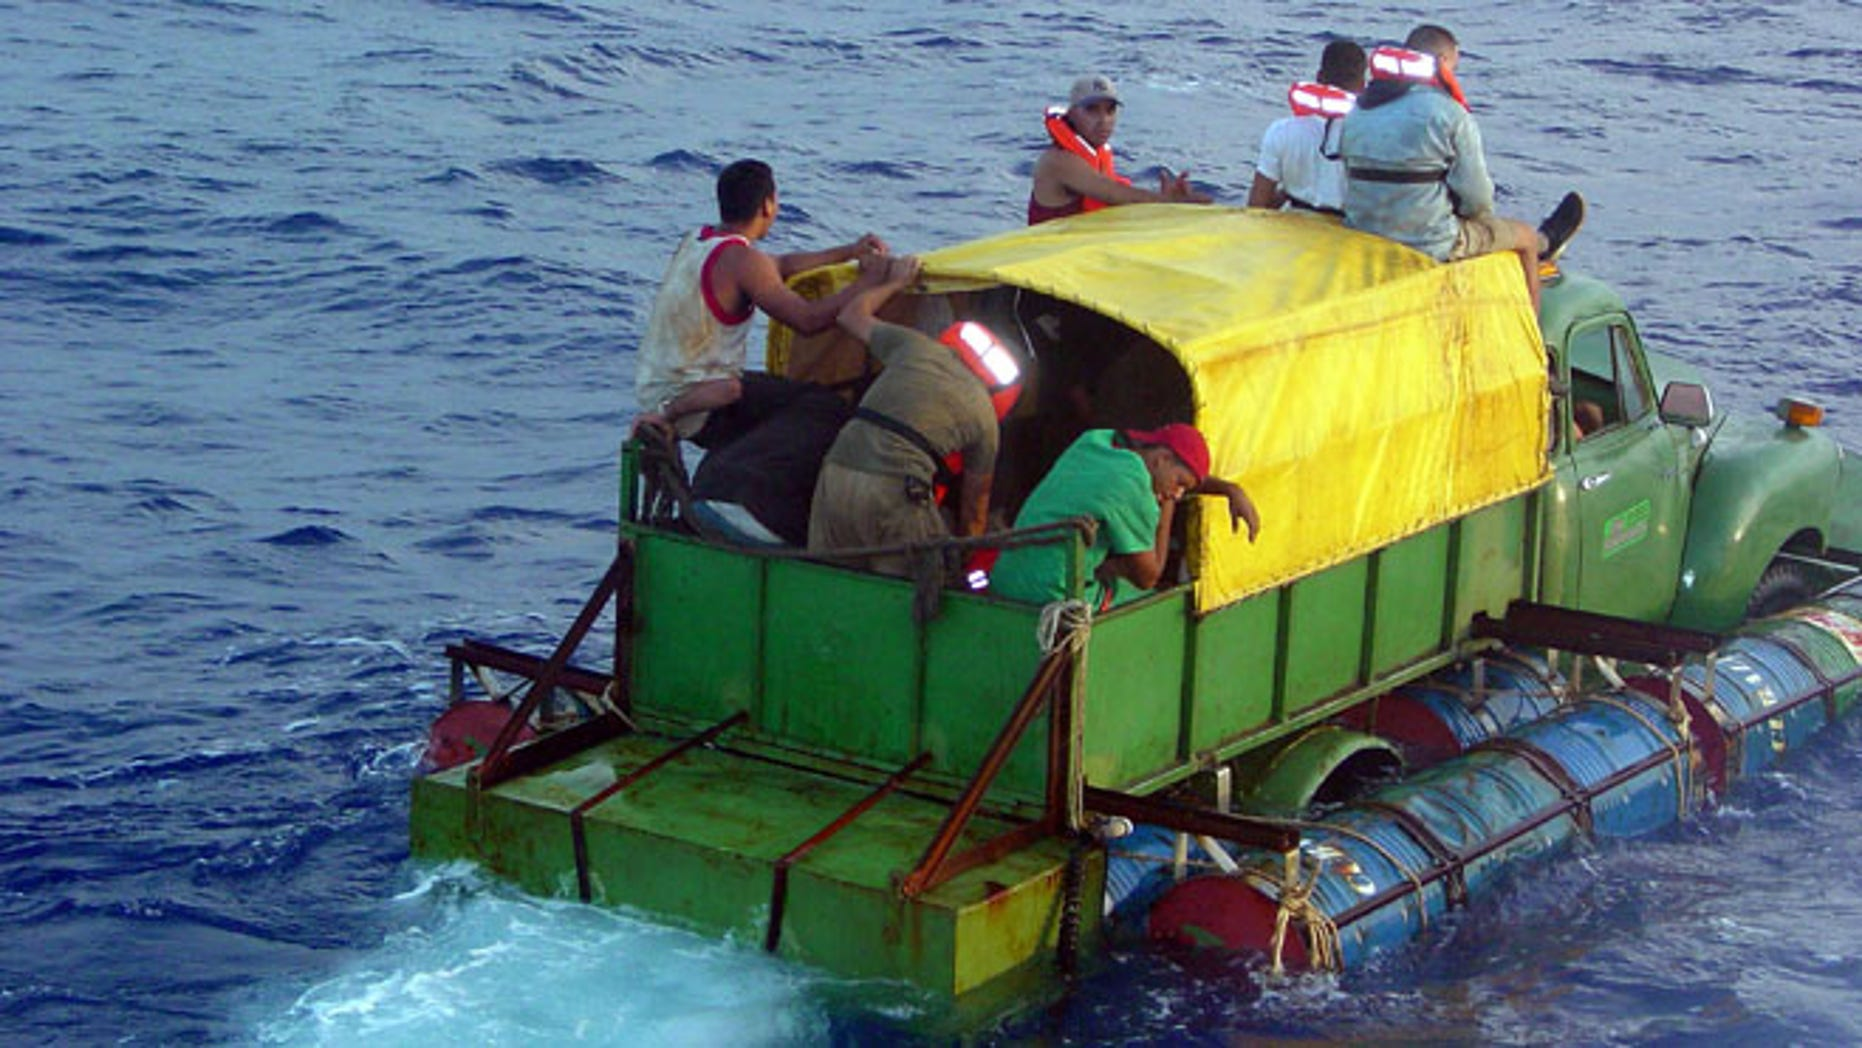 AT SEA - JULY 24:  In this U.S. Coast Guard handout, Cuban migrants trying to reach the U.S. coast in Florida ride a makeshift boat made out of a 1951 Chevrolet truck with a propeller driven off the drive shaft July 16, 2003 off the coast of Florida. The U.S. Coast Guard Cutter Key Largo returned the12 Cuban migrants from the vessel back to Cuba after making it within 40 miles of Key West, Florida. The photograph was released a week after the crew was repatriated.  (Photo by Gregory Ewald/ U.S. Coast Guard/ Getty Images)